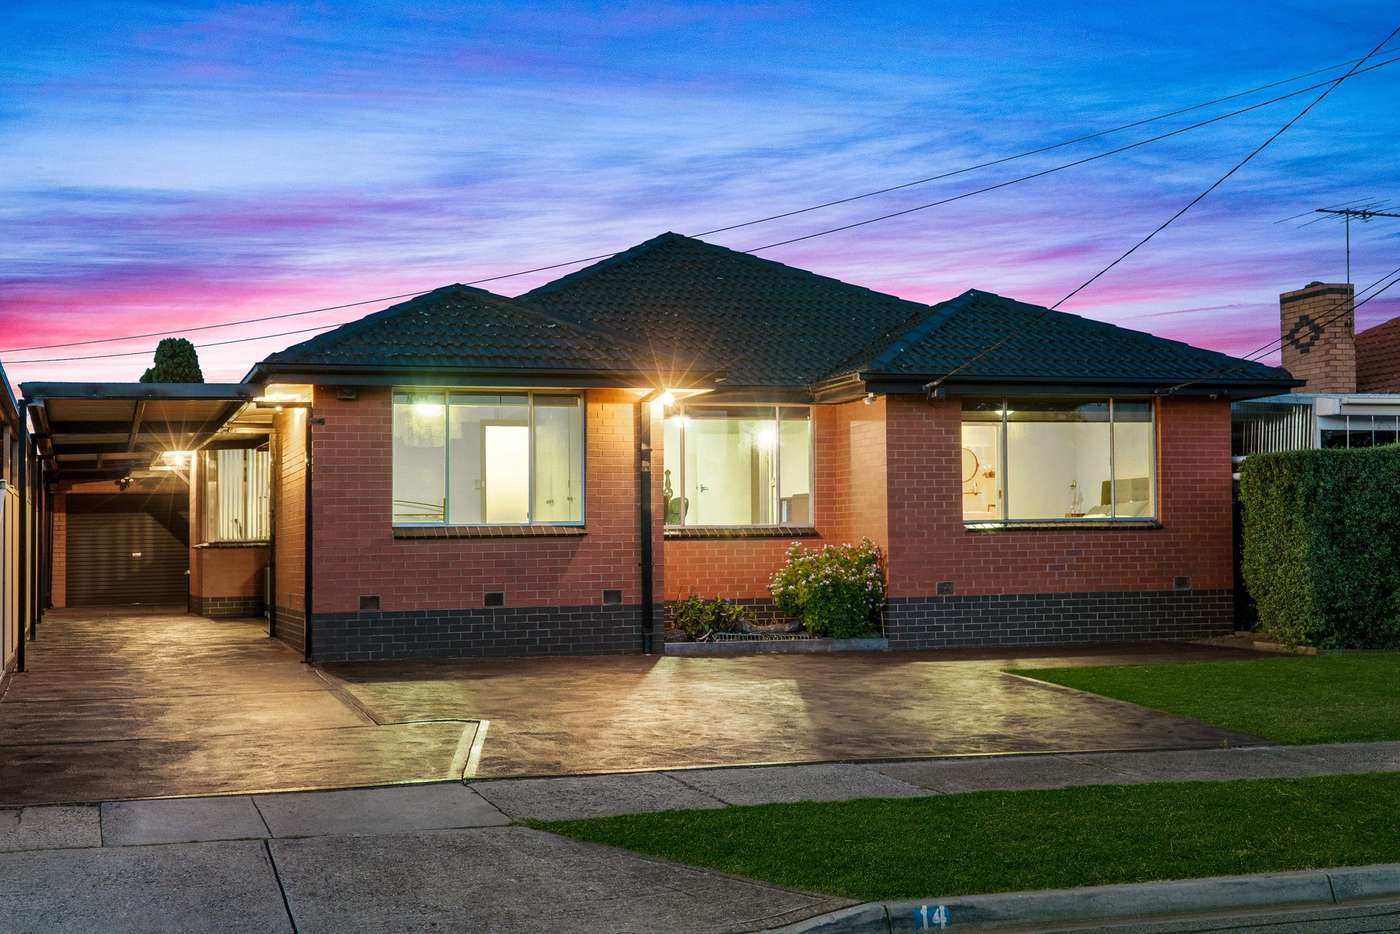 Main view of Homely house listing, 14 Chelmsford Crescent, St Albans VIC 3021